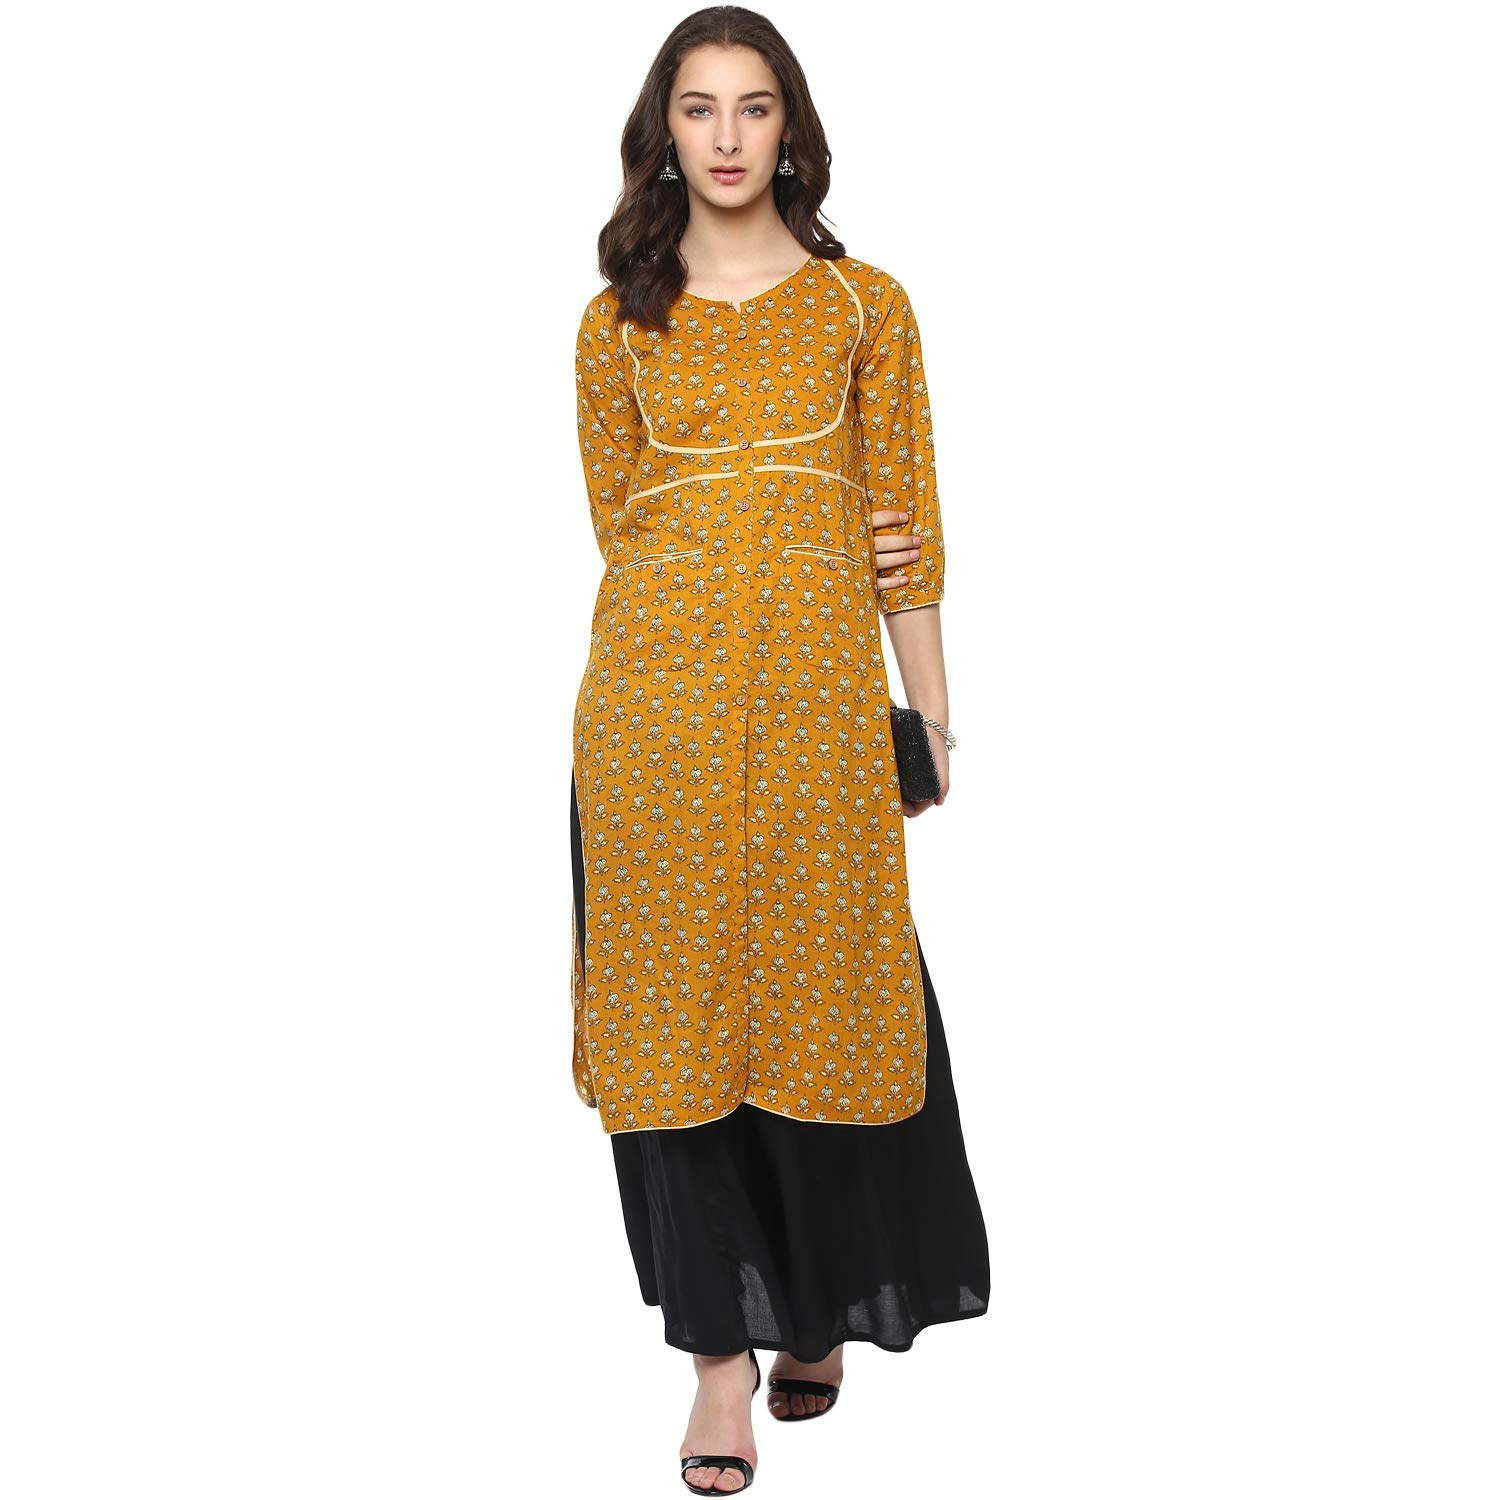 07c55d17899 Vedic Mustard Cotton Knee Length Printed Kurti for Women  Amazon.in   Clothing   Accessories